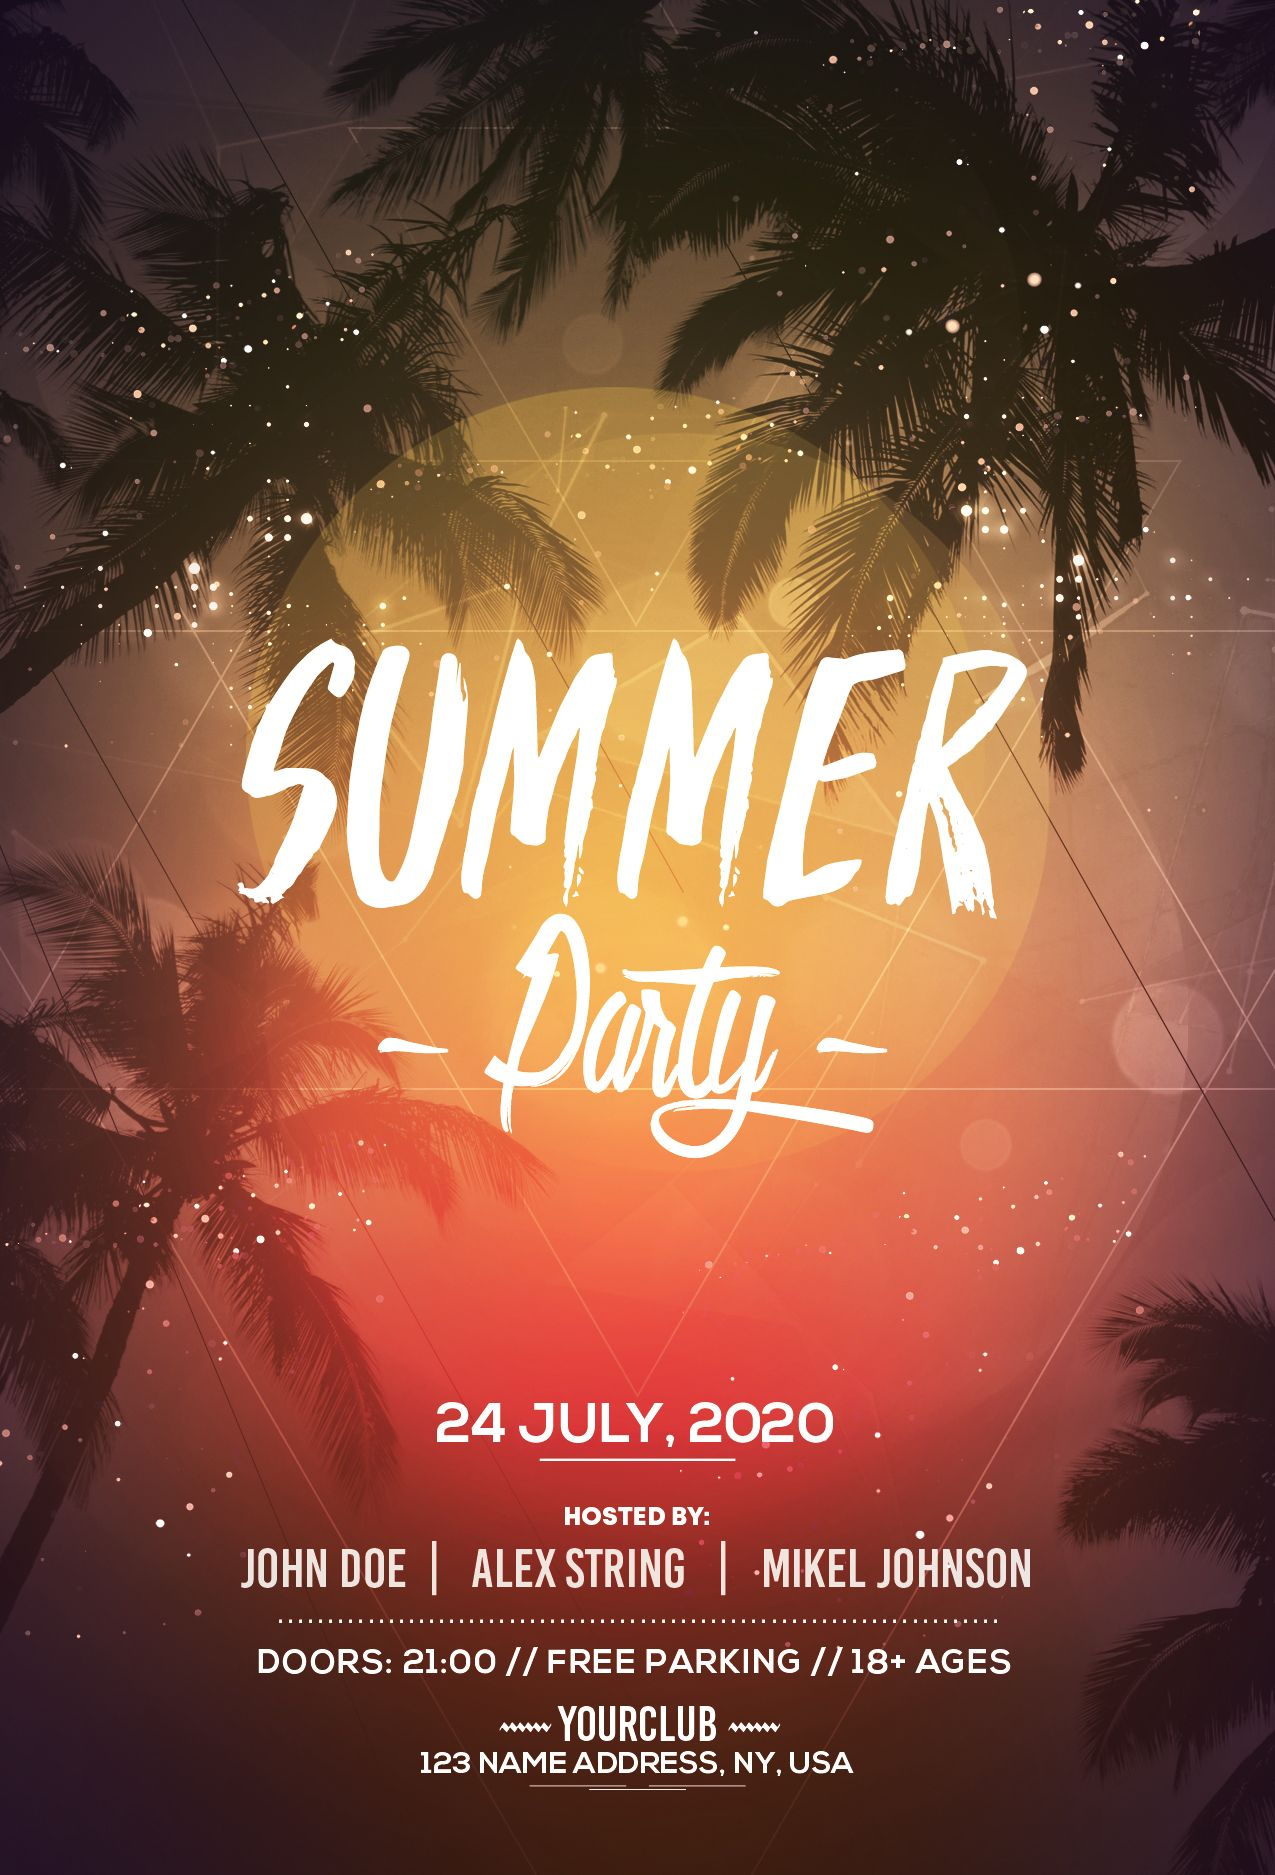 Summer Party Free PSD Flyer Template (Vol.2) | Free psd flyer ...